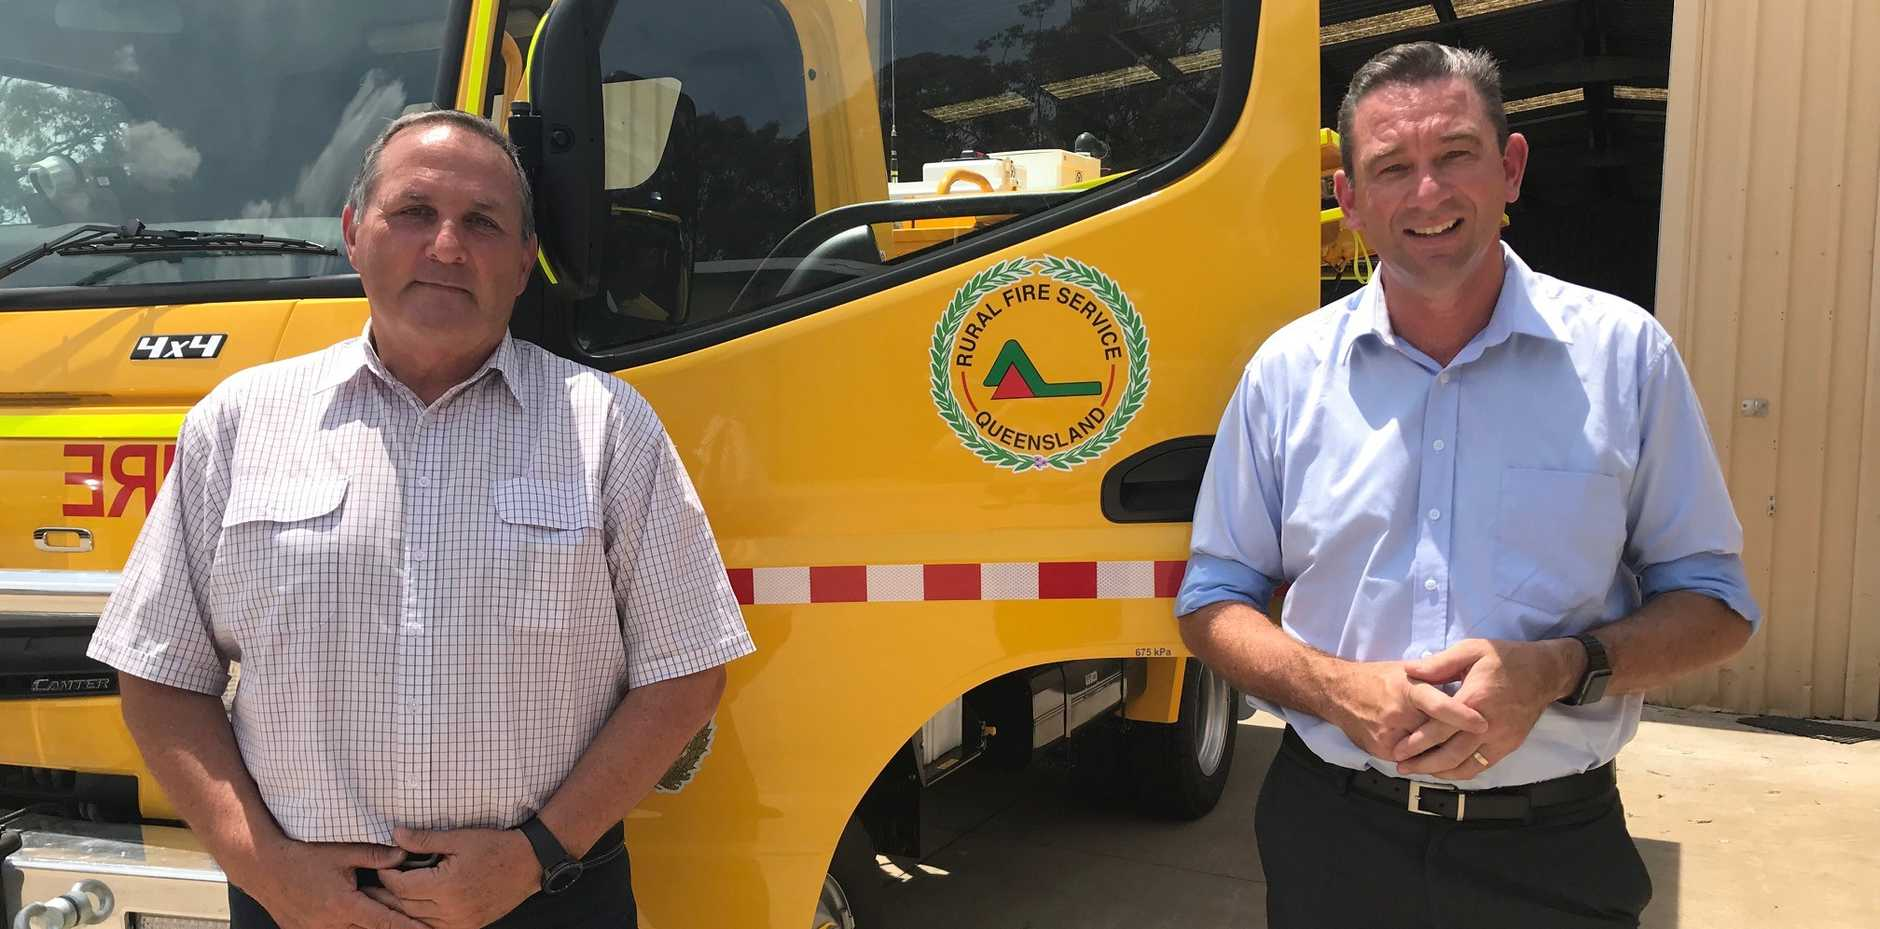 Quik Corp Crows Nest branch manager Mal Assim and Fire and Emergency Services Minister Craig Crawford